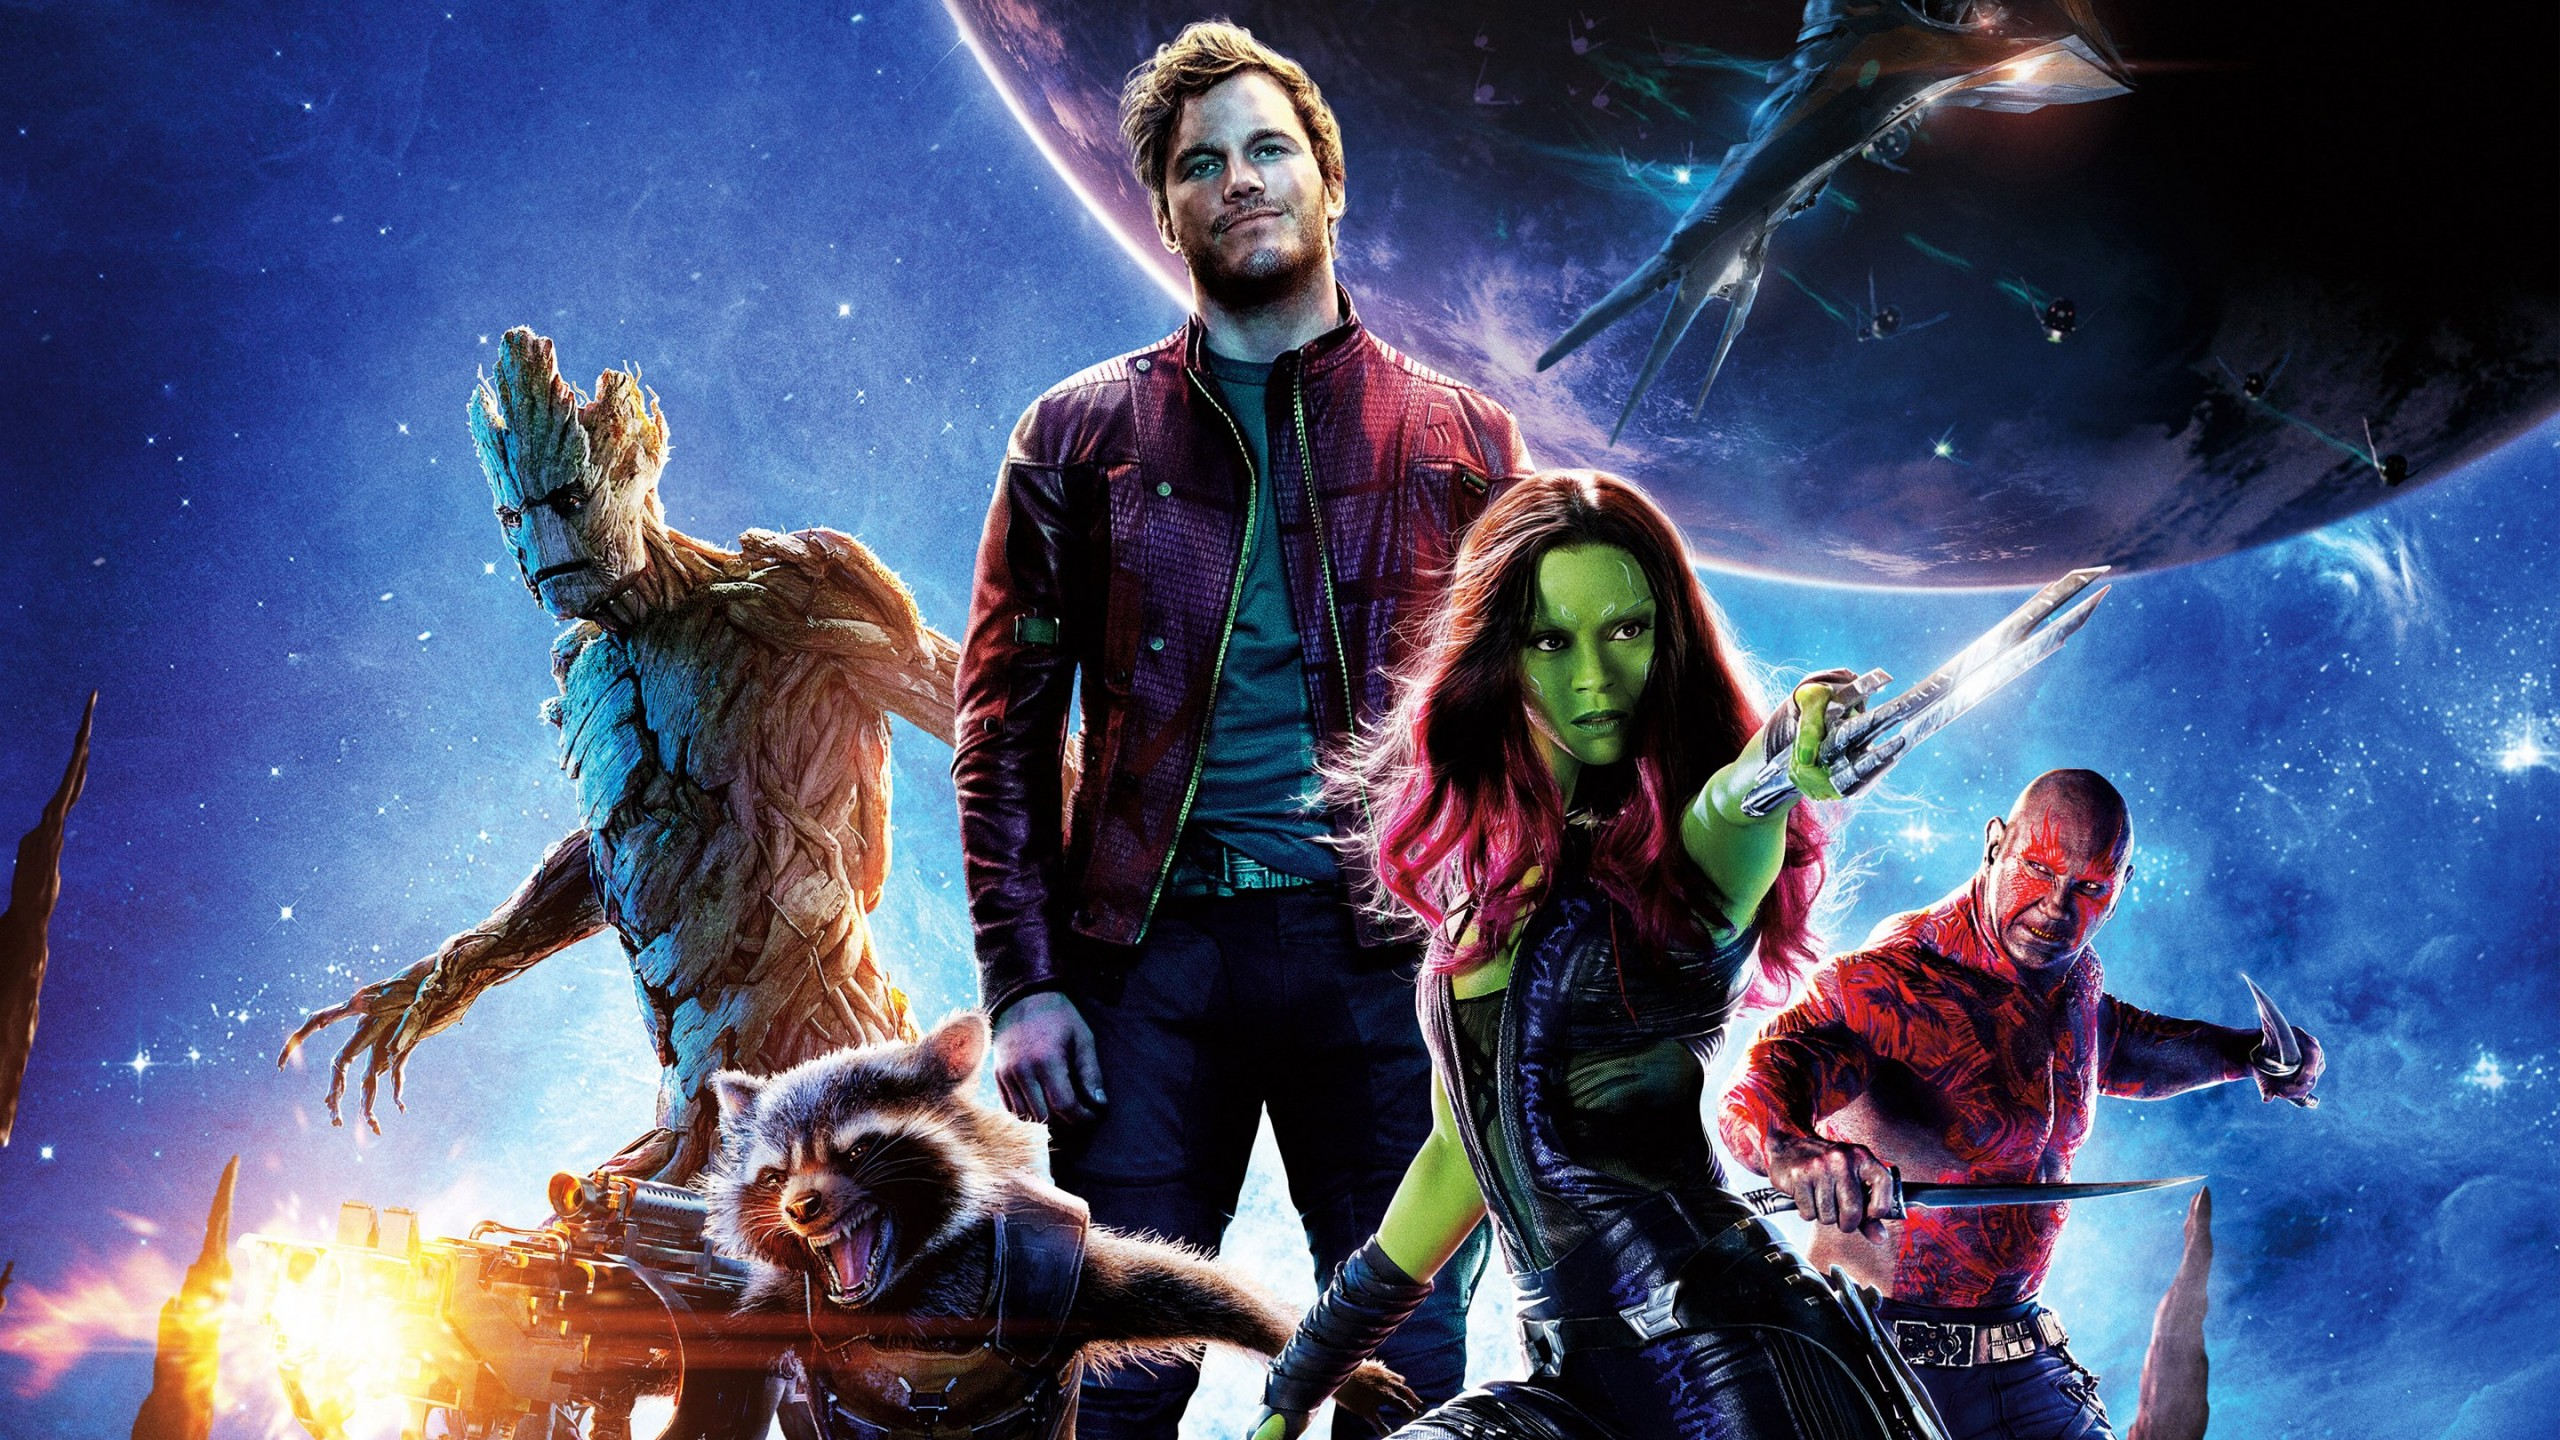 Guardians of the Galaxy Wallpaper for Desktop 2560x1440